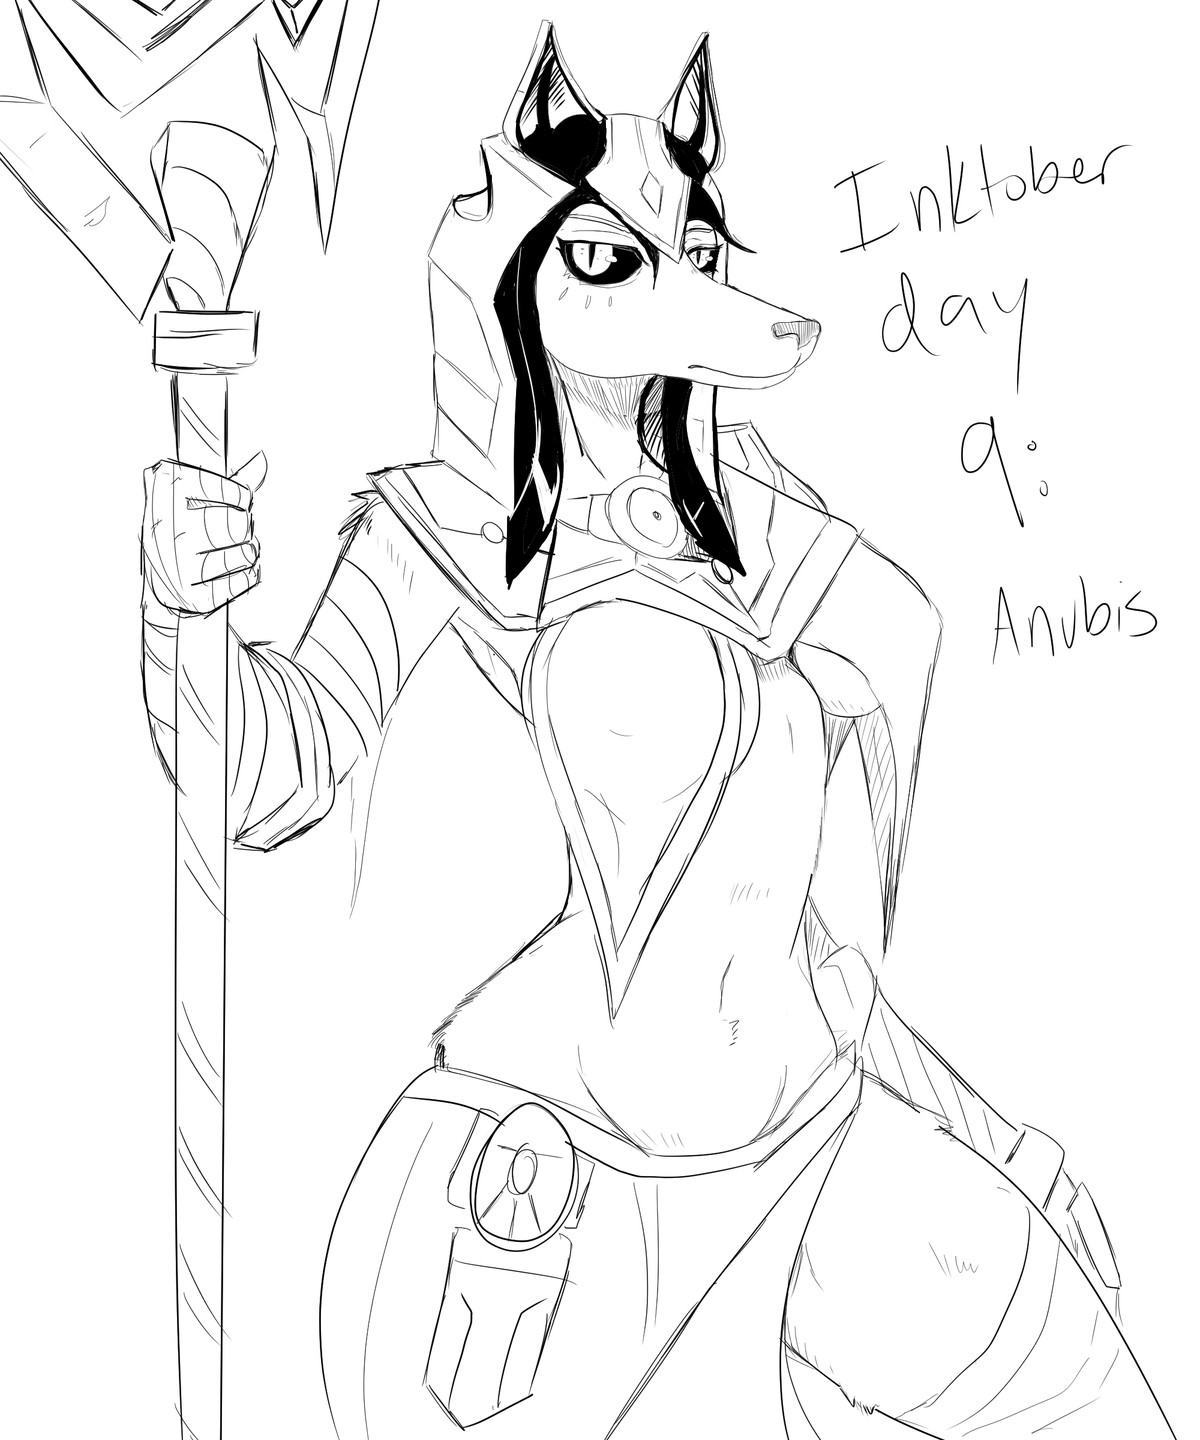 inktober 9 but a furry. join list: GBArt (261 subs)Mention History.. Original for reference